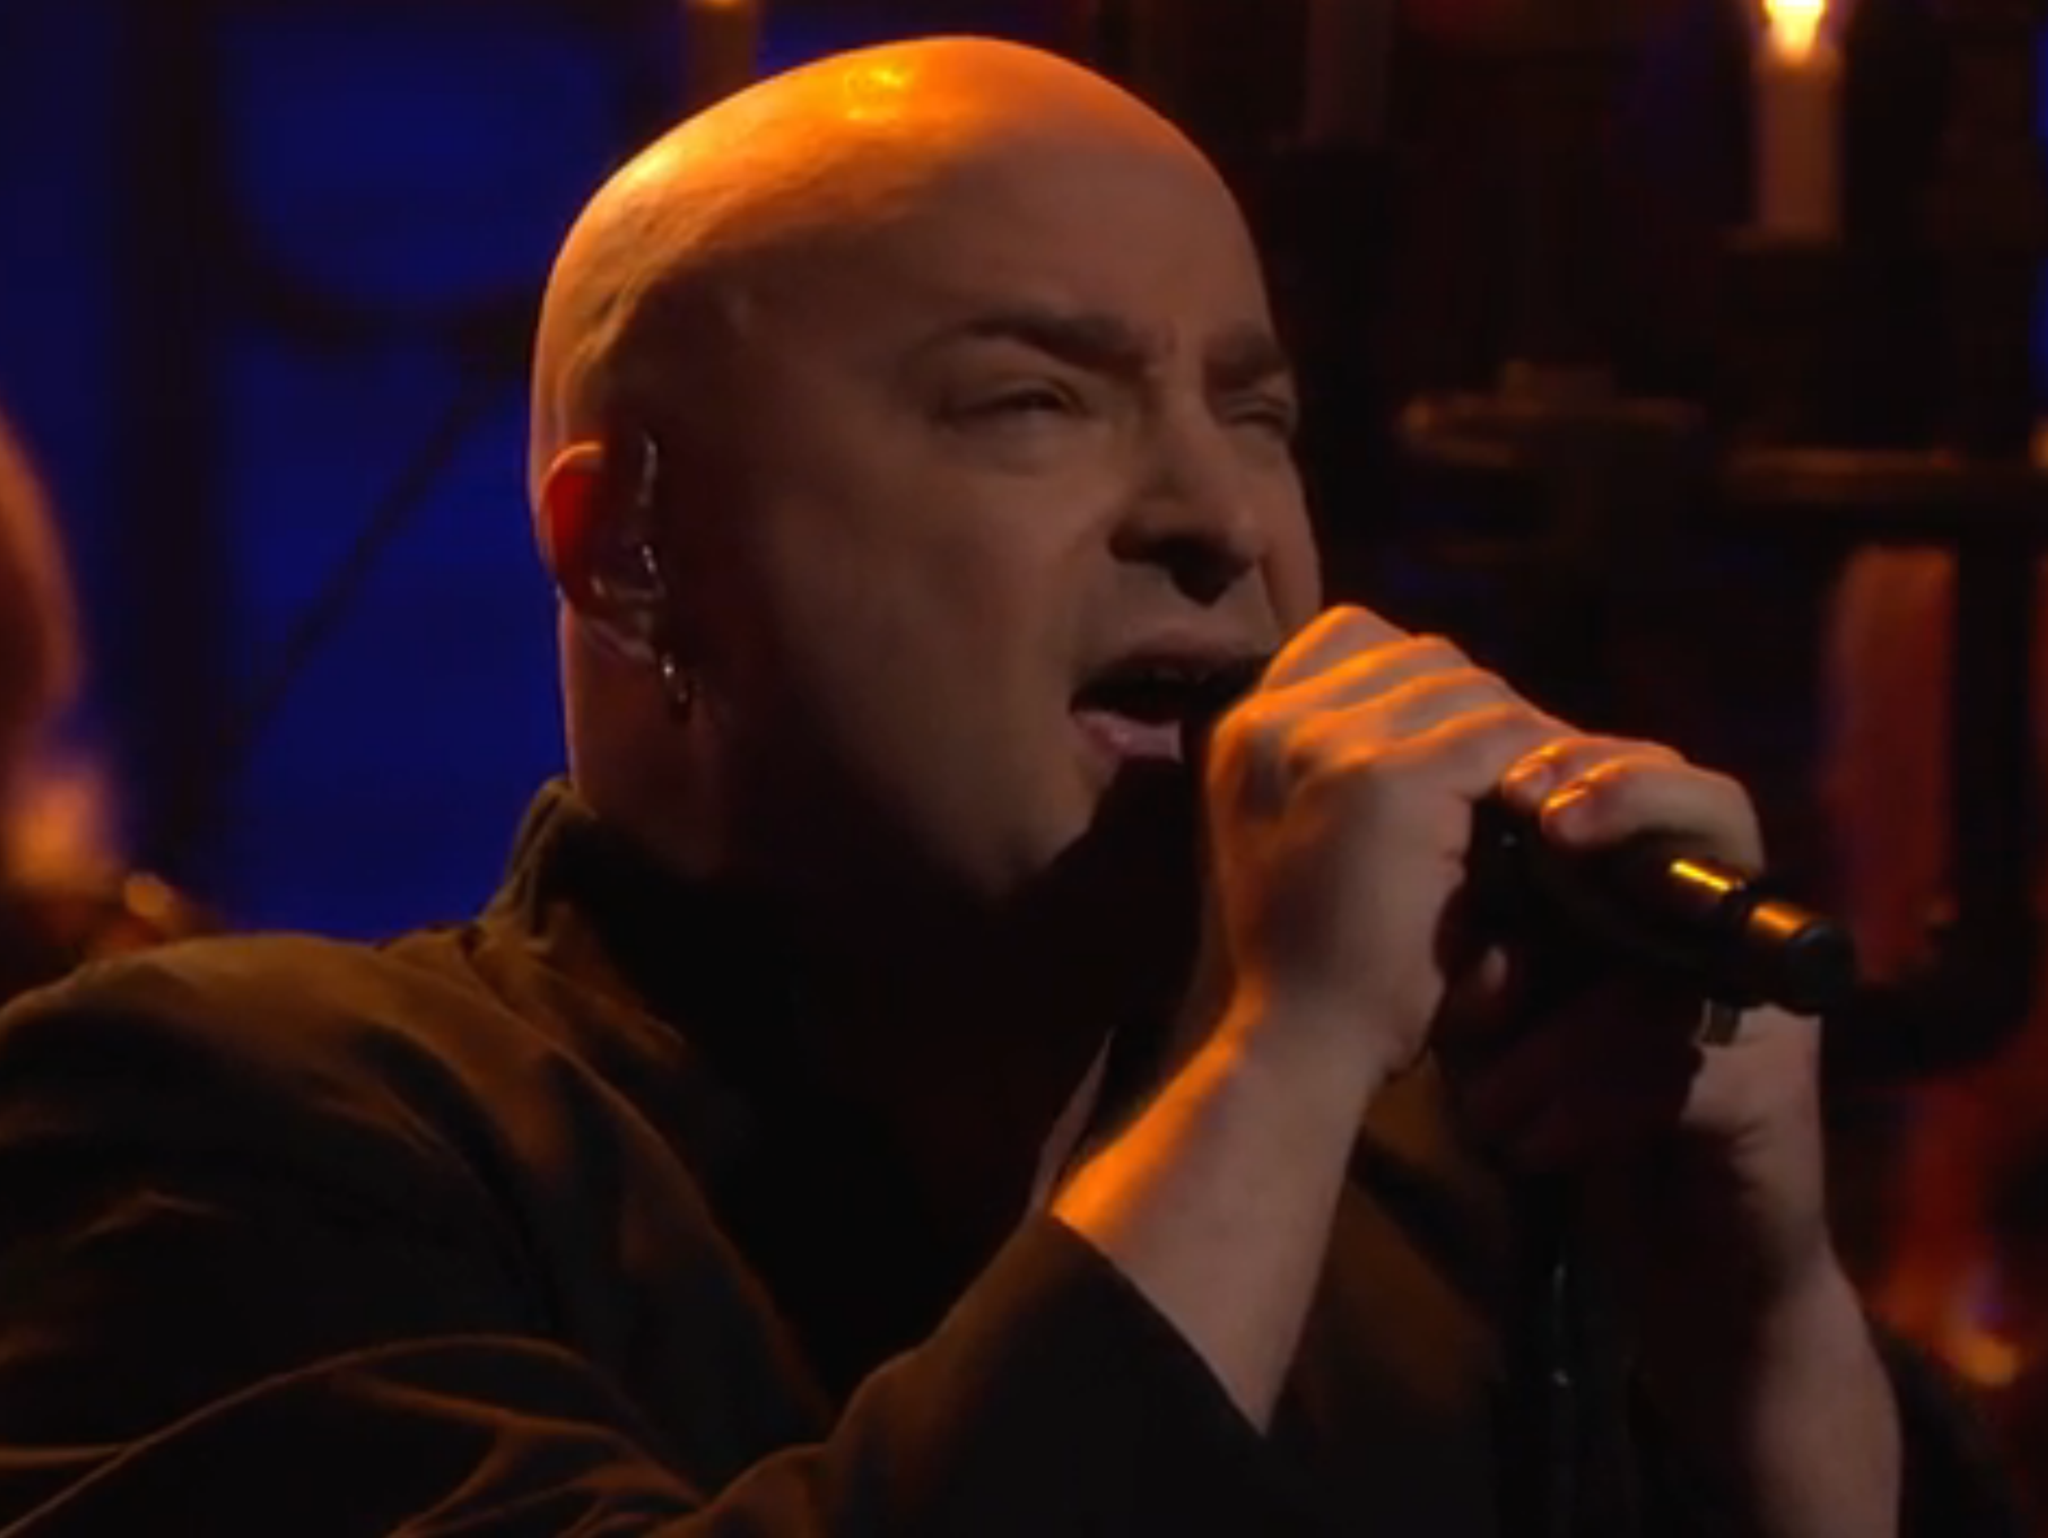 Watch Chicago Band Disturbed Play The Sound Of Silence